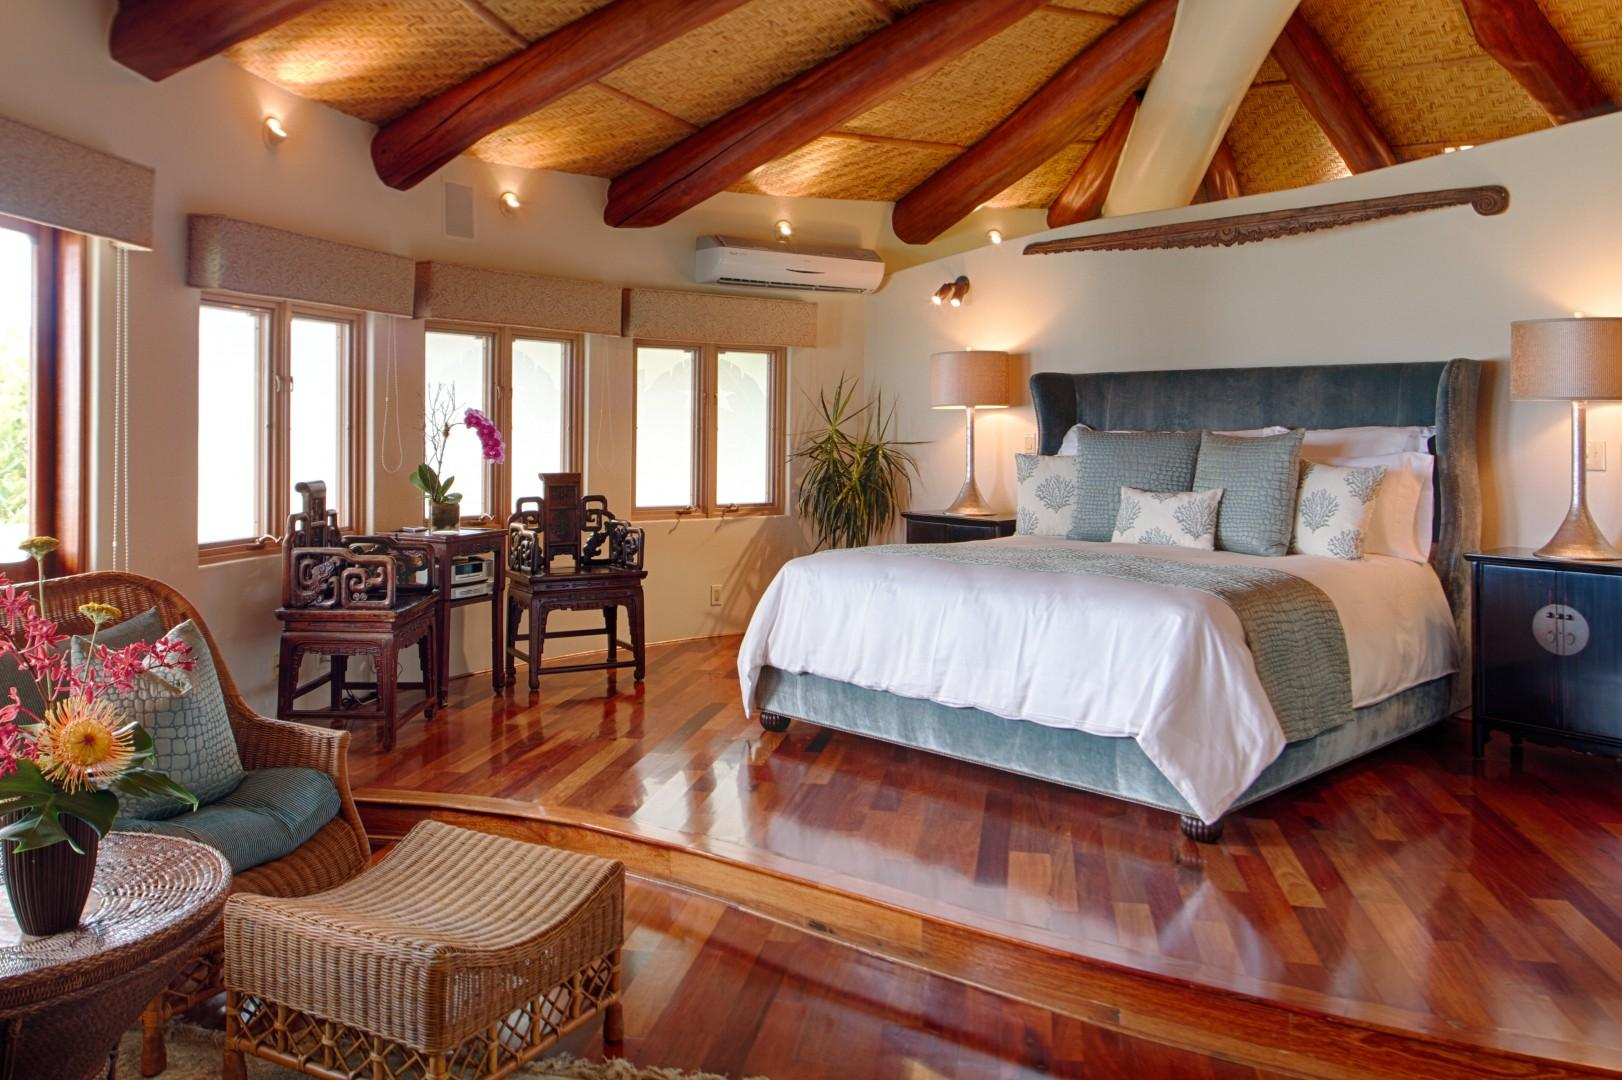 Master Bedroom in Main House